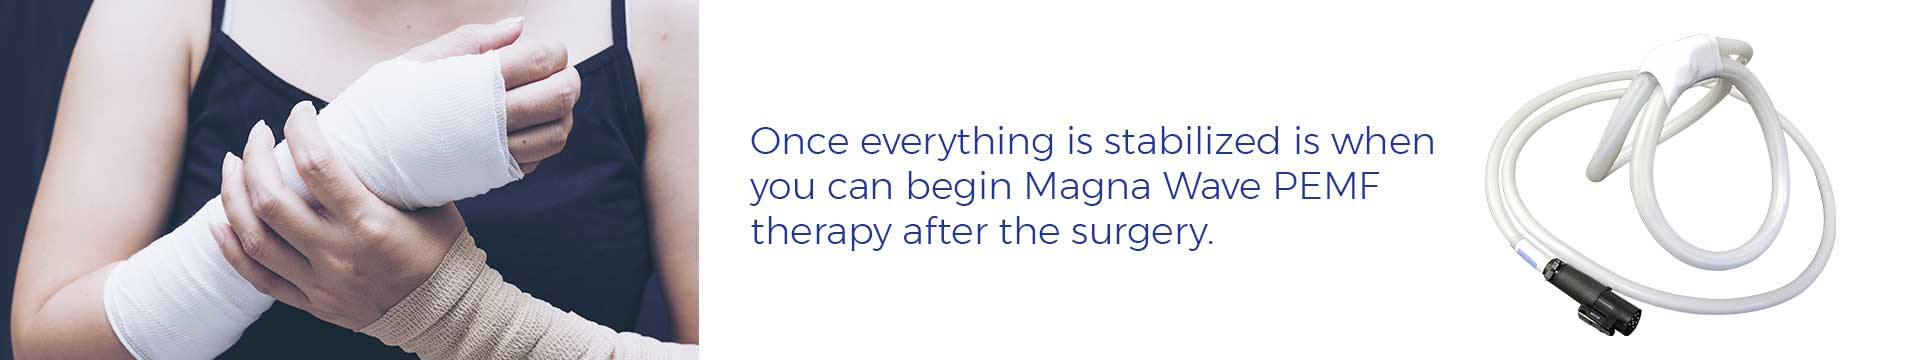 Once everything is stabilized is when you can begin Magna Wave PEMF therapy after the surgery.